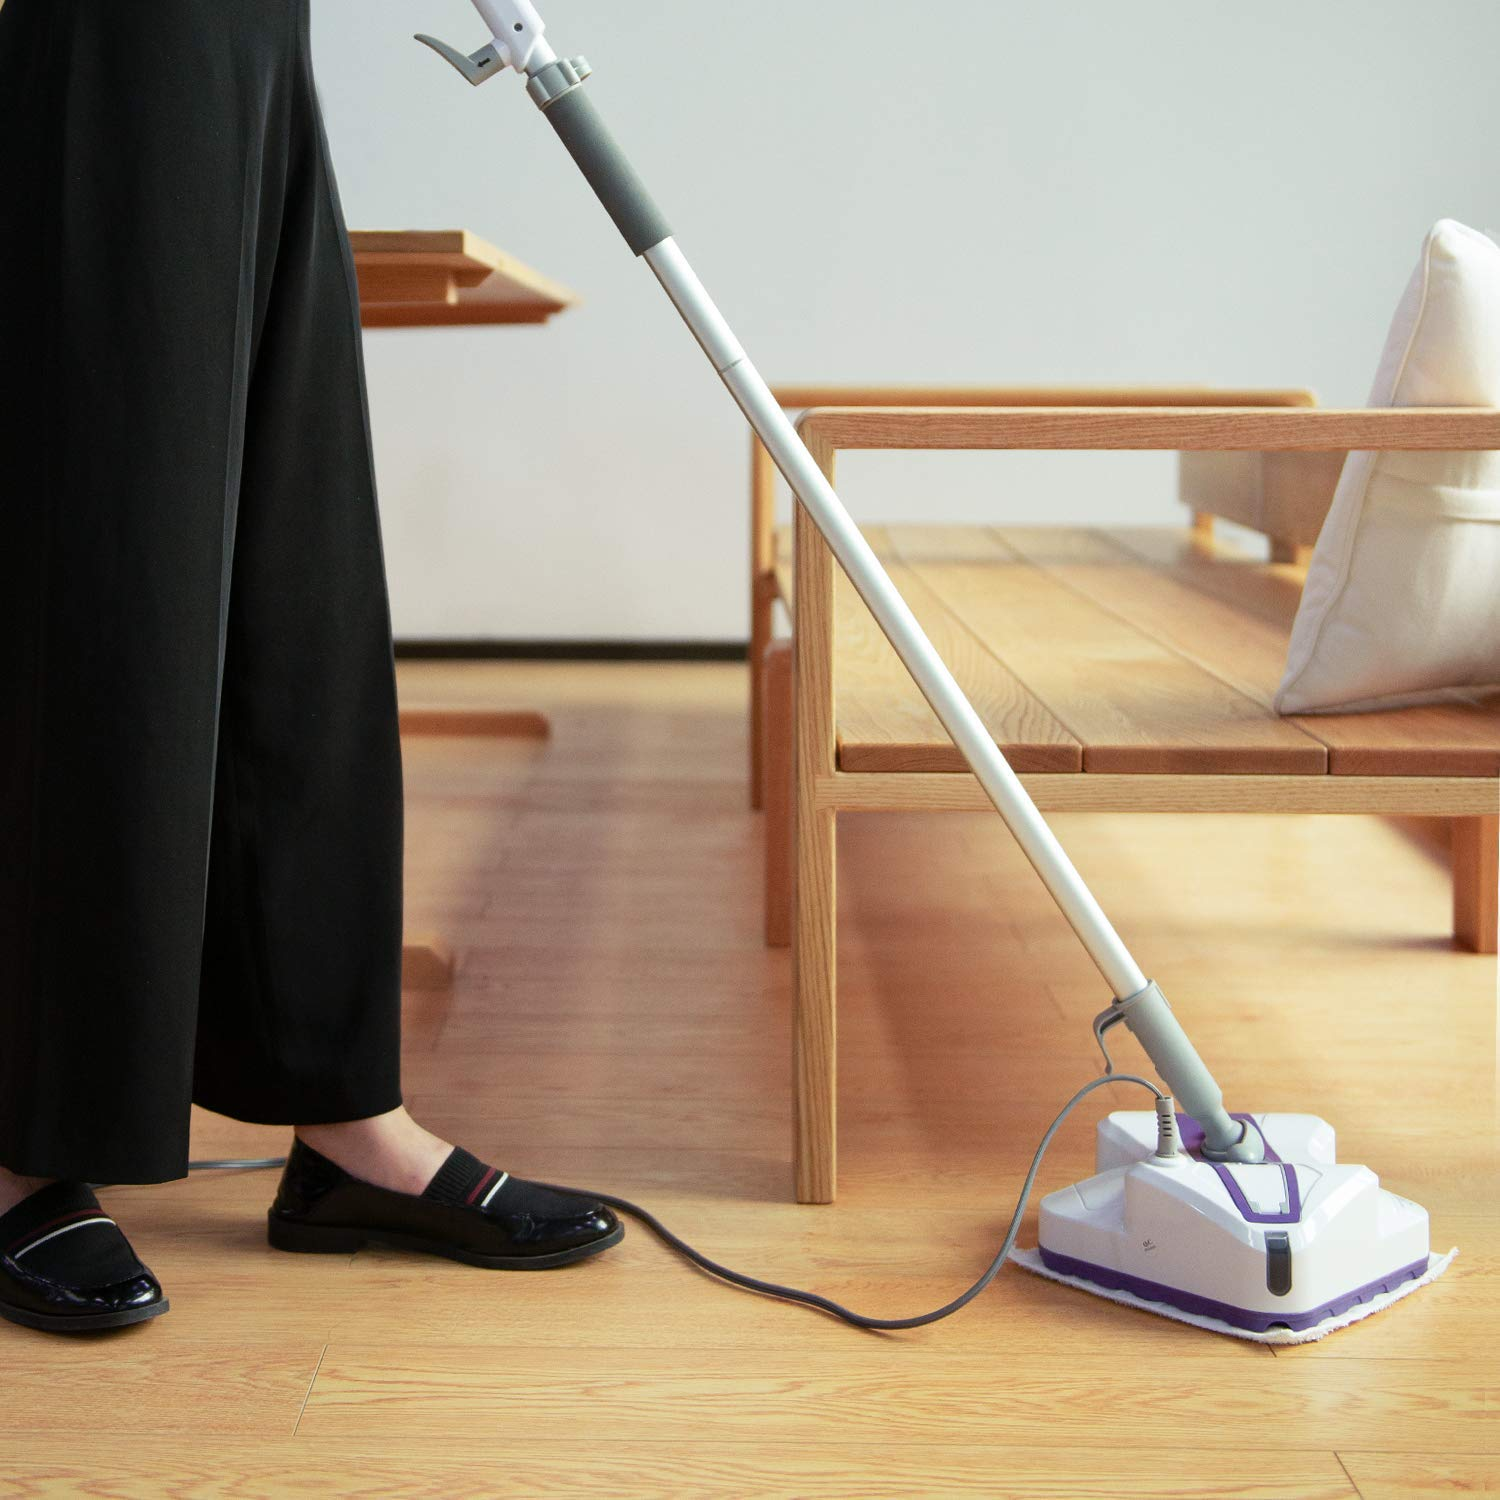 Light-N-Easy-Steam-Mop-for-Floor-Cleaning-With-Automatic-Steam-Control